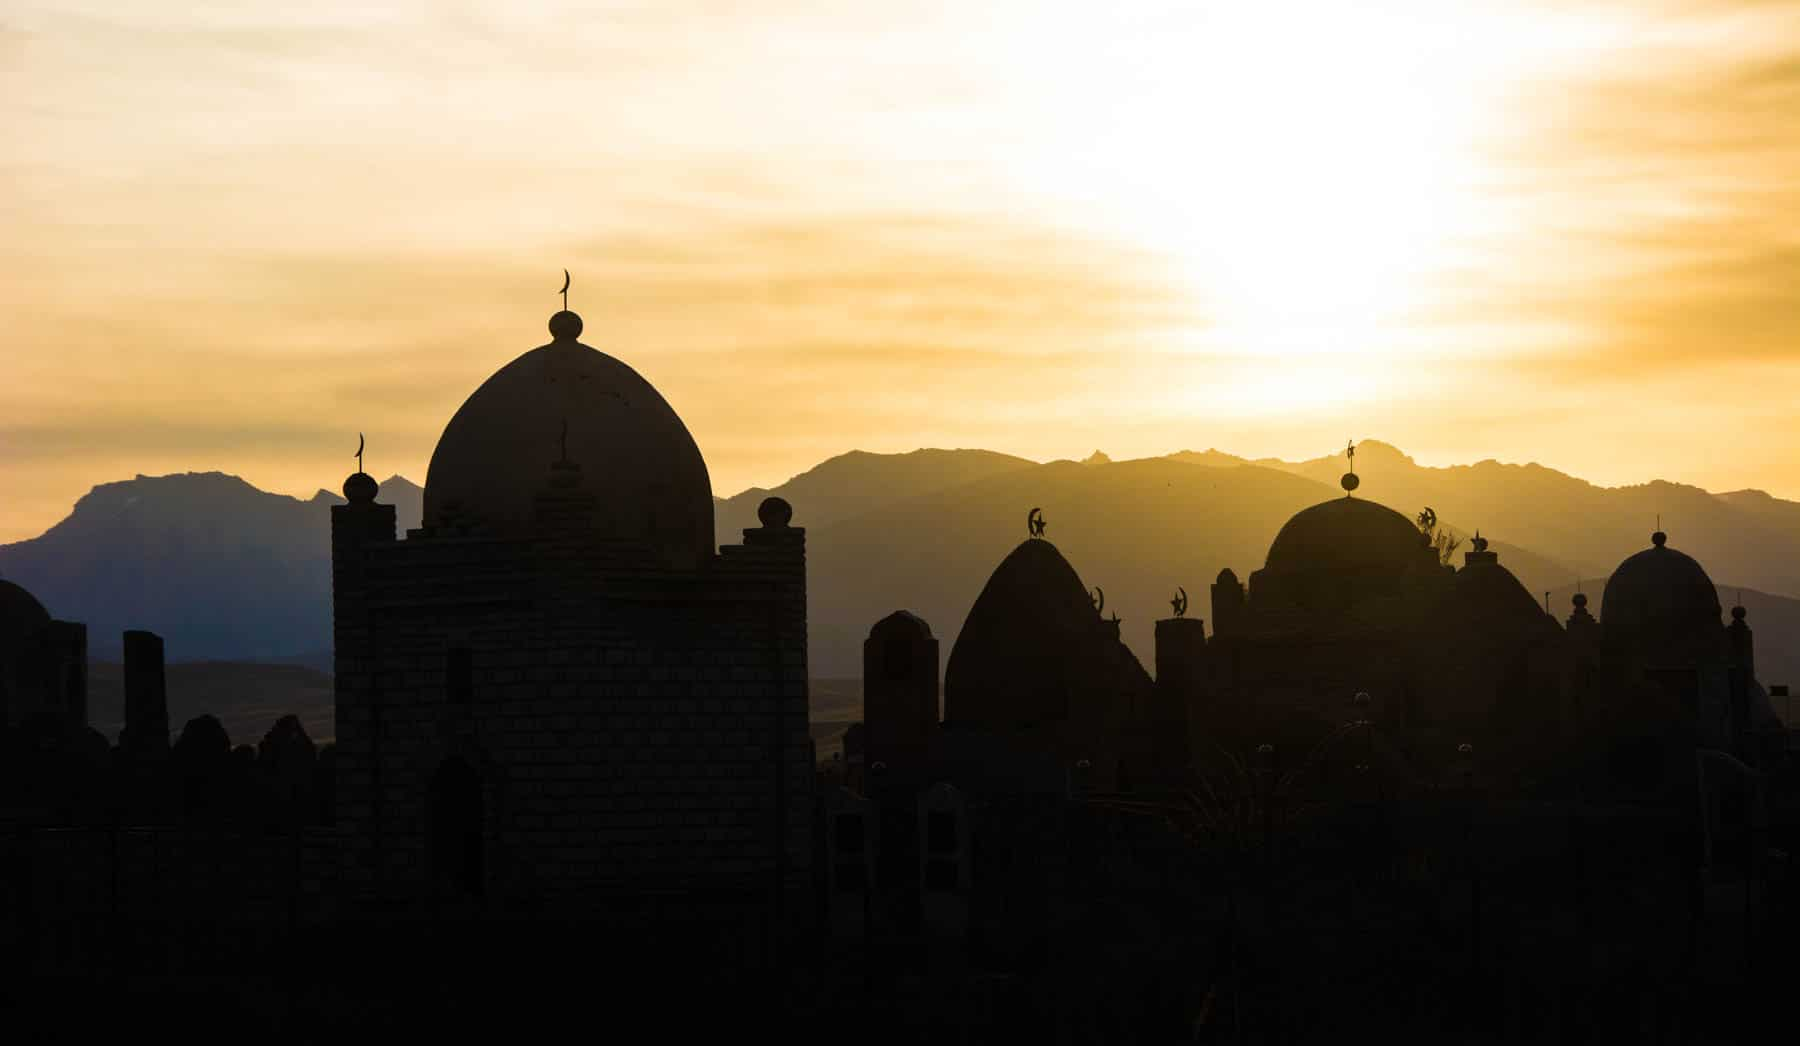 Sunrise over an Islamic cemetery in Kyzart, Kyrgyzstan - Lost With Purpose